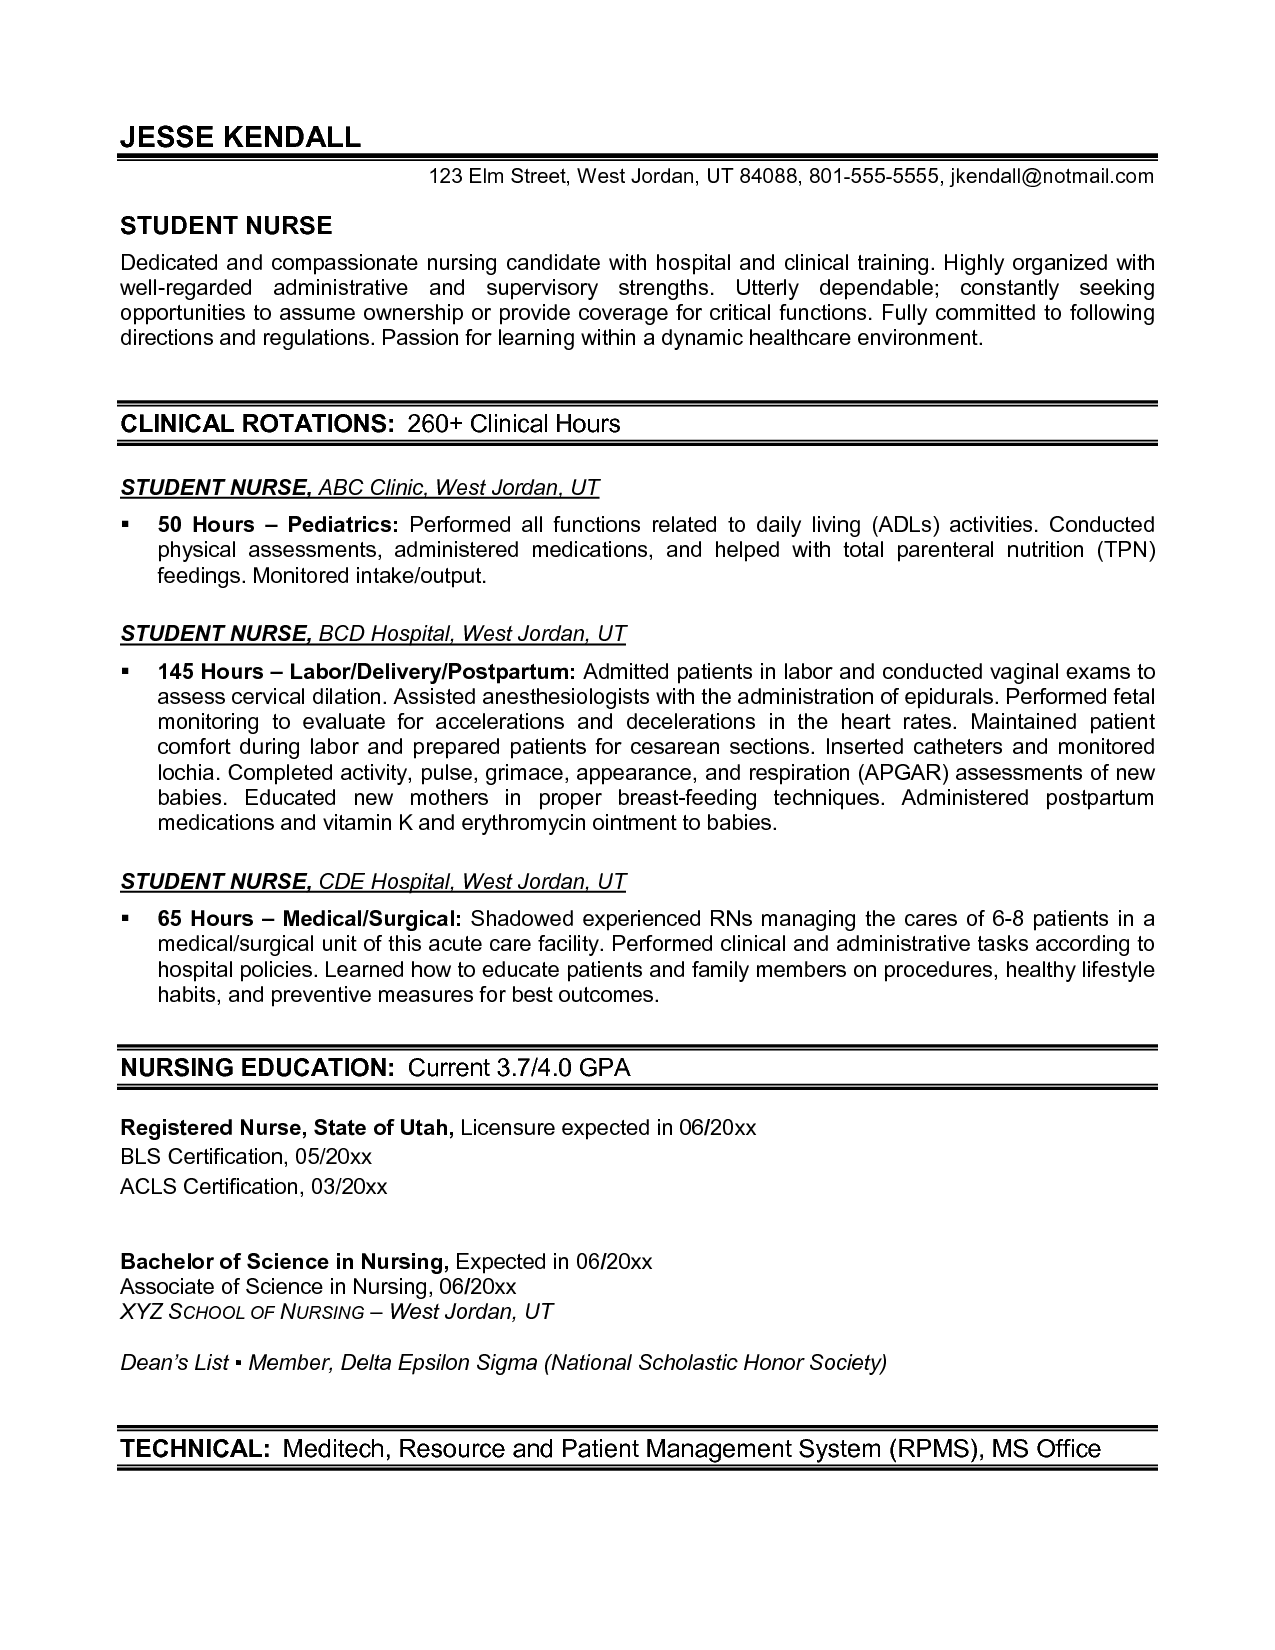 Resume Template Nursing Nursing Pinterest Nursing Resume - Scrub Nurse Cover Letter